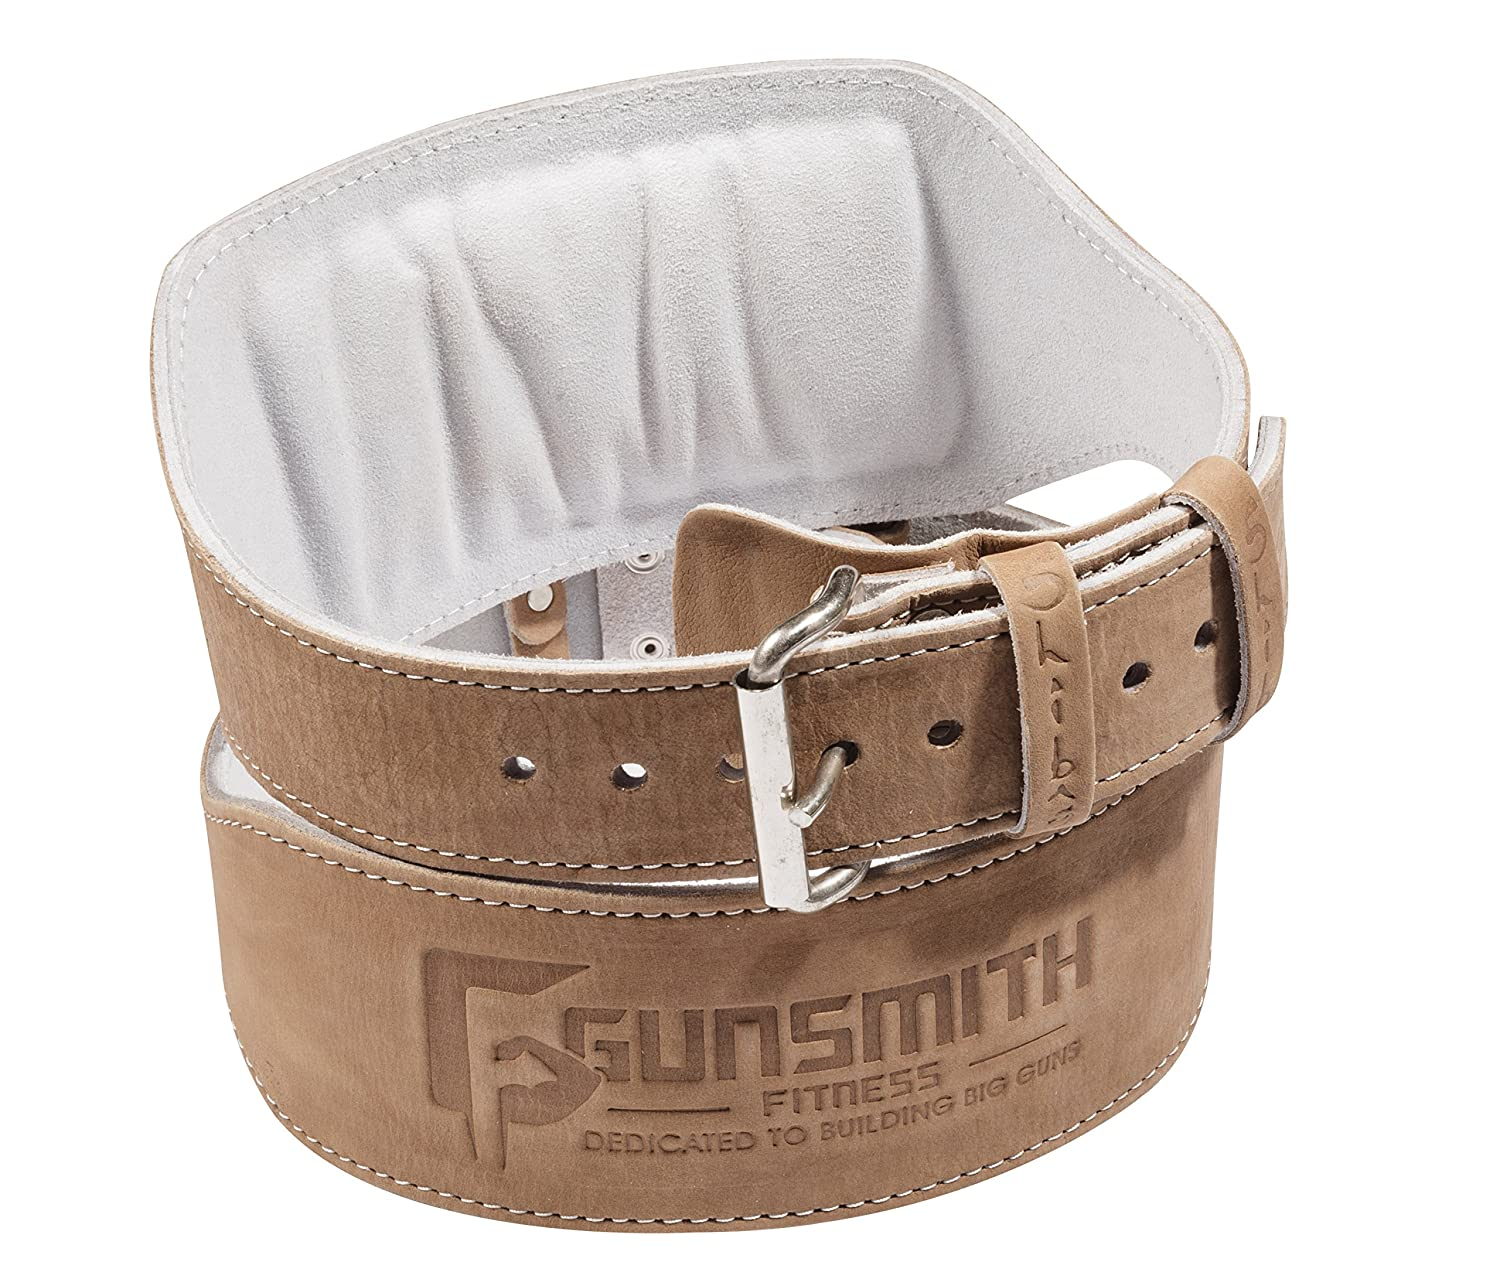 Gunsmith Fitness Premium 100 Real Genuine Leather Individually Handmade, Advanced Weight Lifting, Powerlifting Bodybuilding